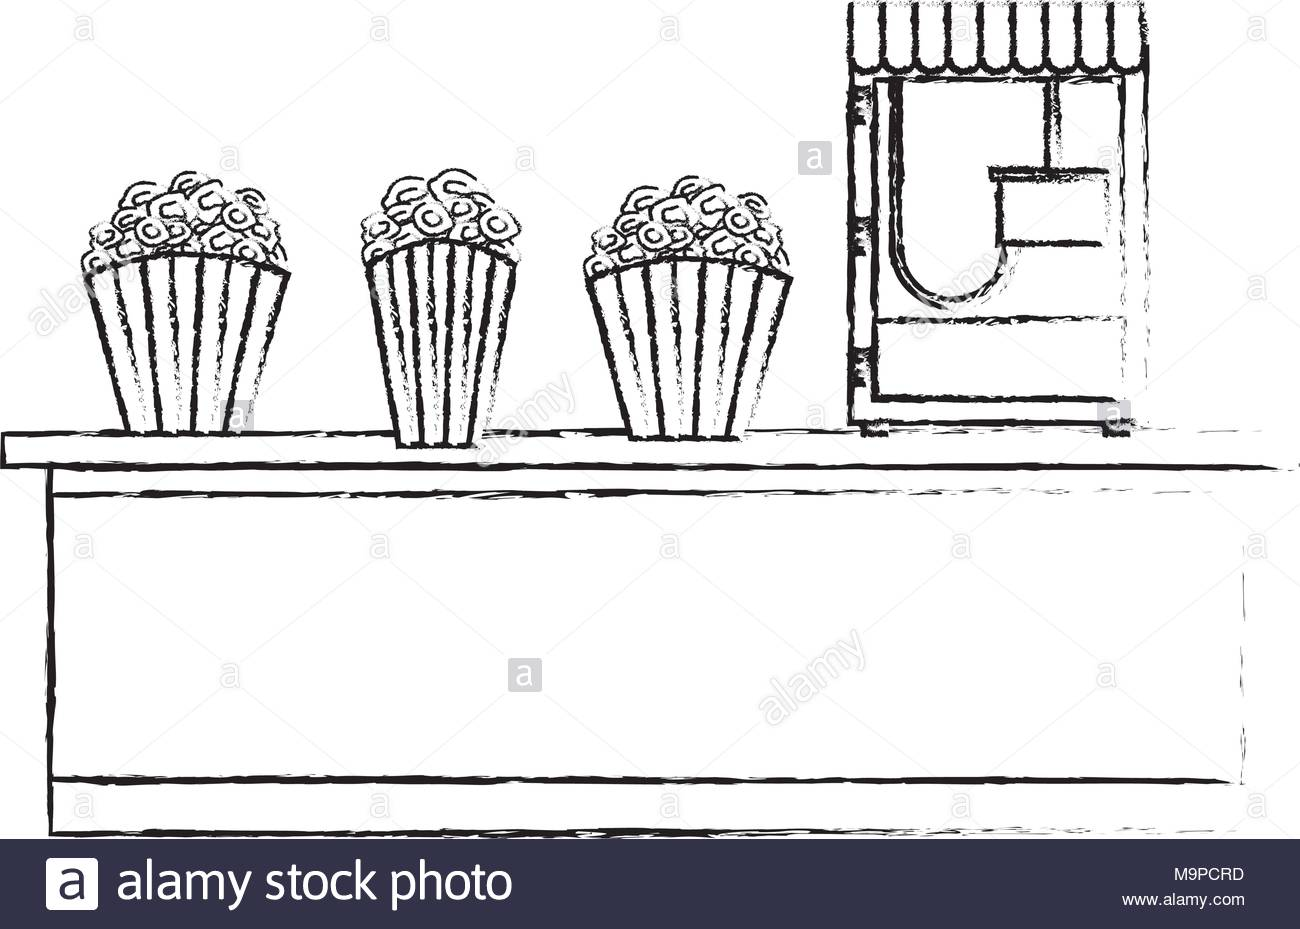 Popcorn Machine Drawing At Free For Personal Use Cr4 Thread Proper Way Of Wiring 8pin 120ac Volts Coil Relay 1300x929 Stock Photos Amp Images